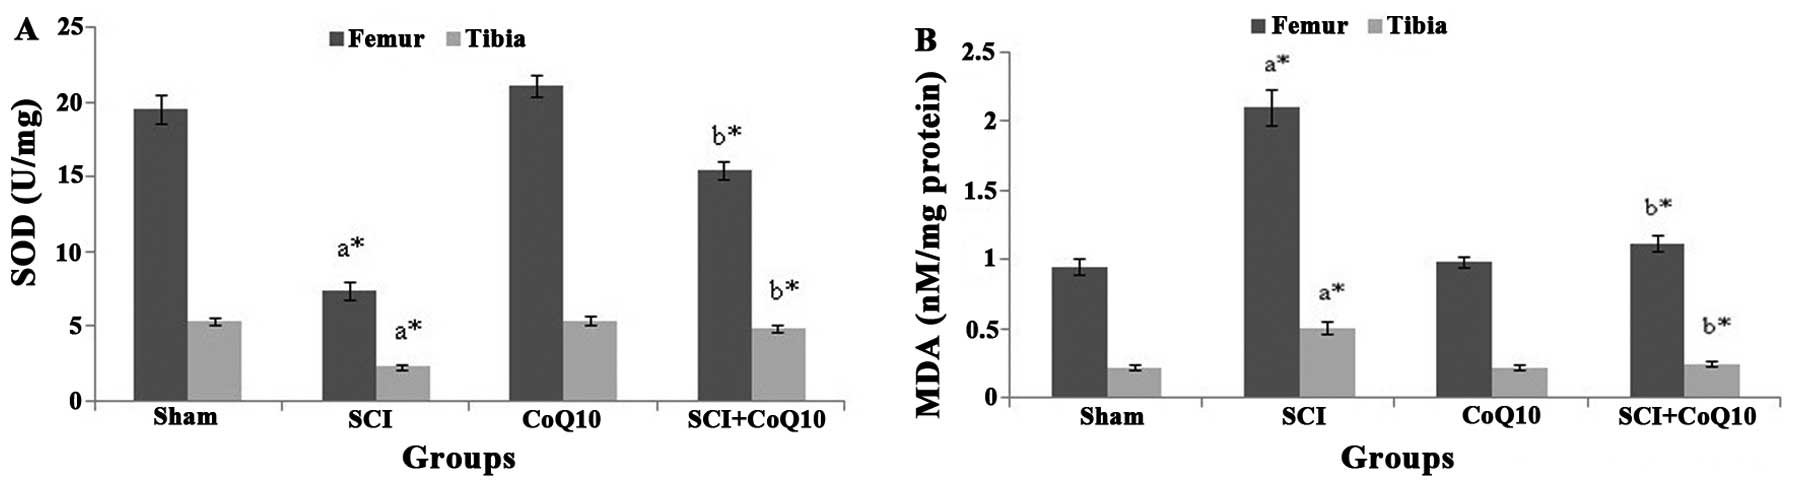 hight resolution of effect of coq10 on levels of oxidative stress markers in rats with sci a sod levels and b mda levels values are expressed as the mean standard